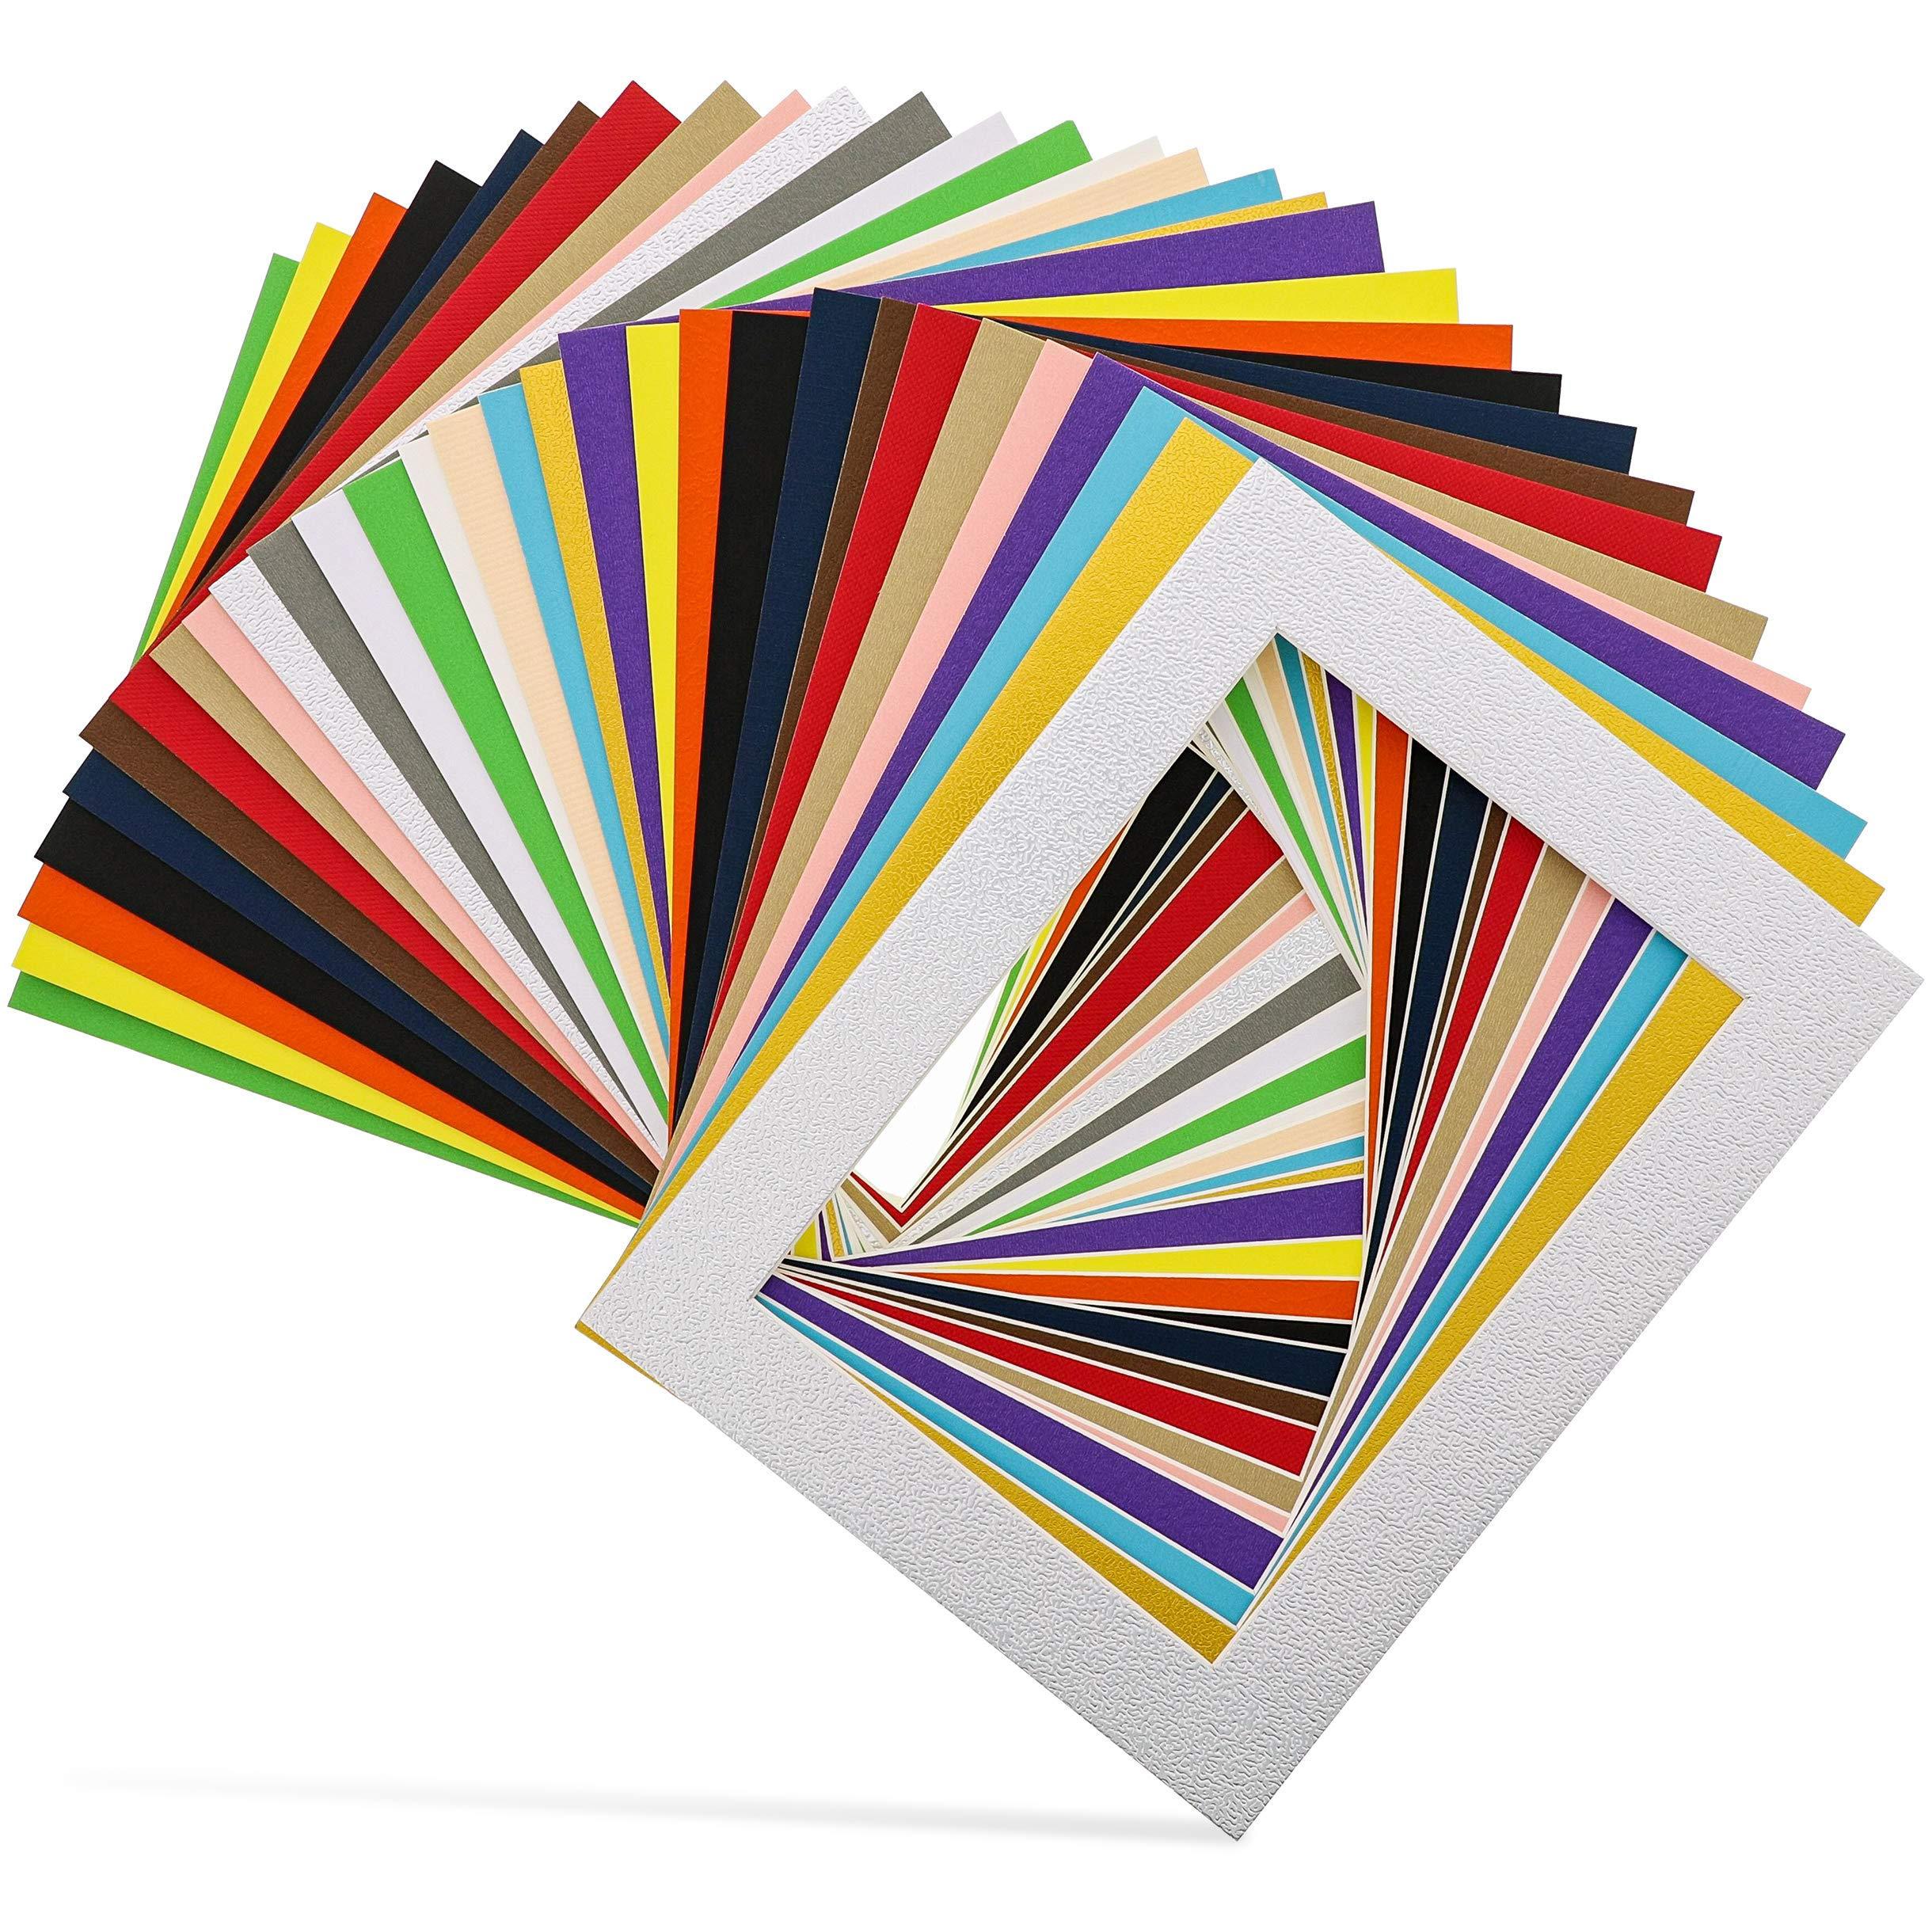 Bright Creations 30-Pack 6.5 x 8.5 Inch Picture Matted Frame Boards for 5x7 Photos, Assorted Colors by Bright Creations